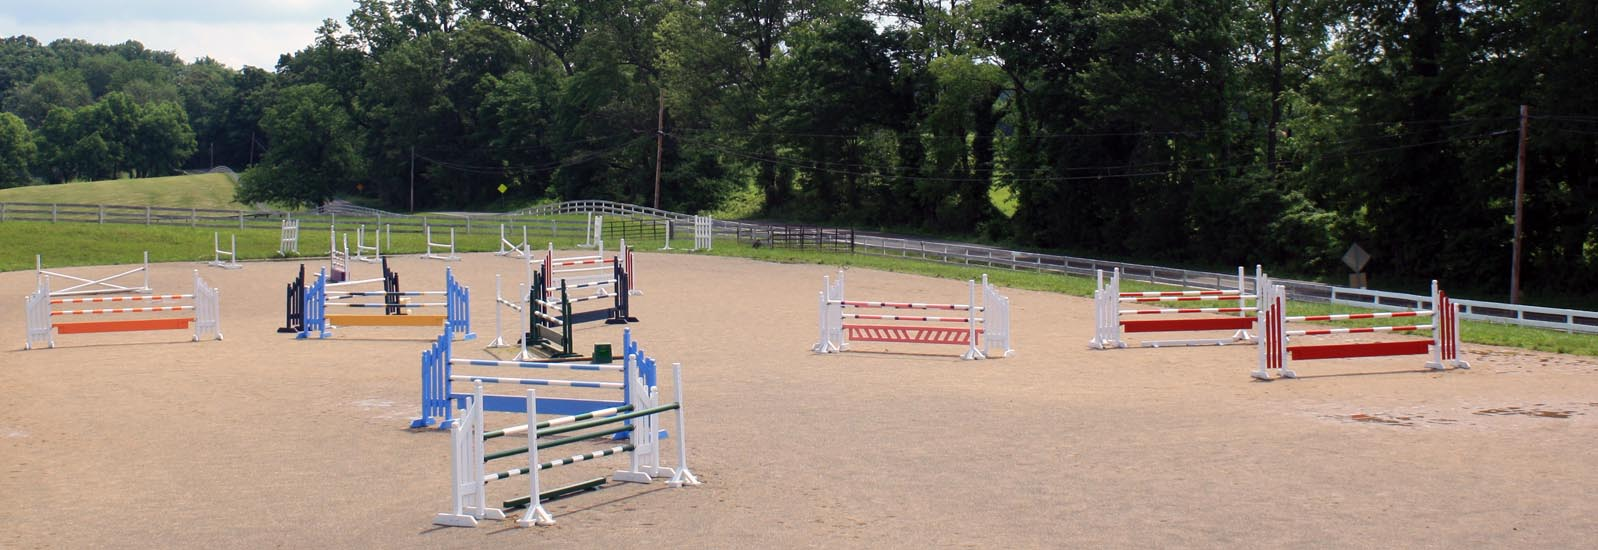 horse jumps in ring